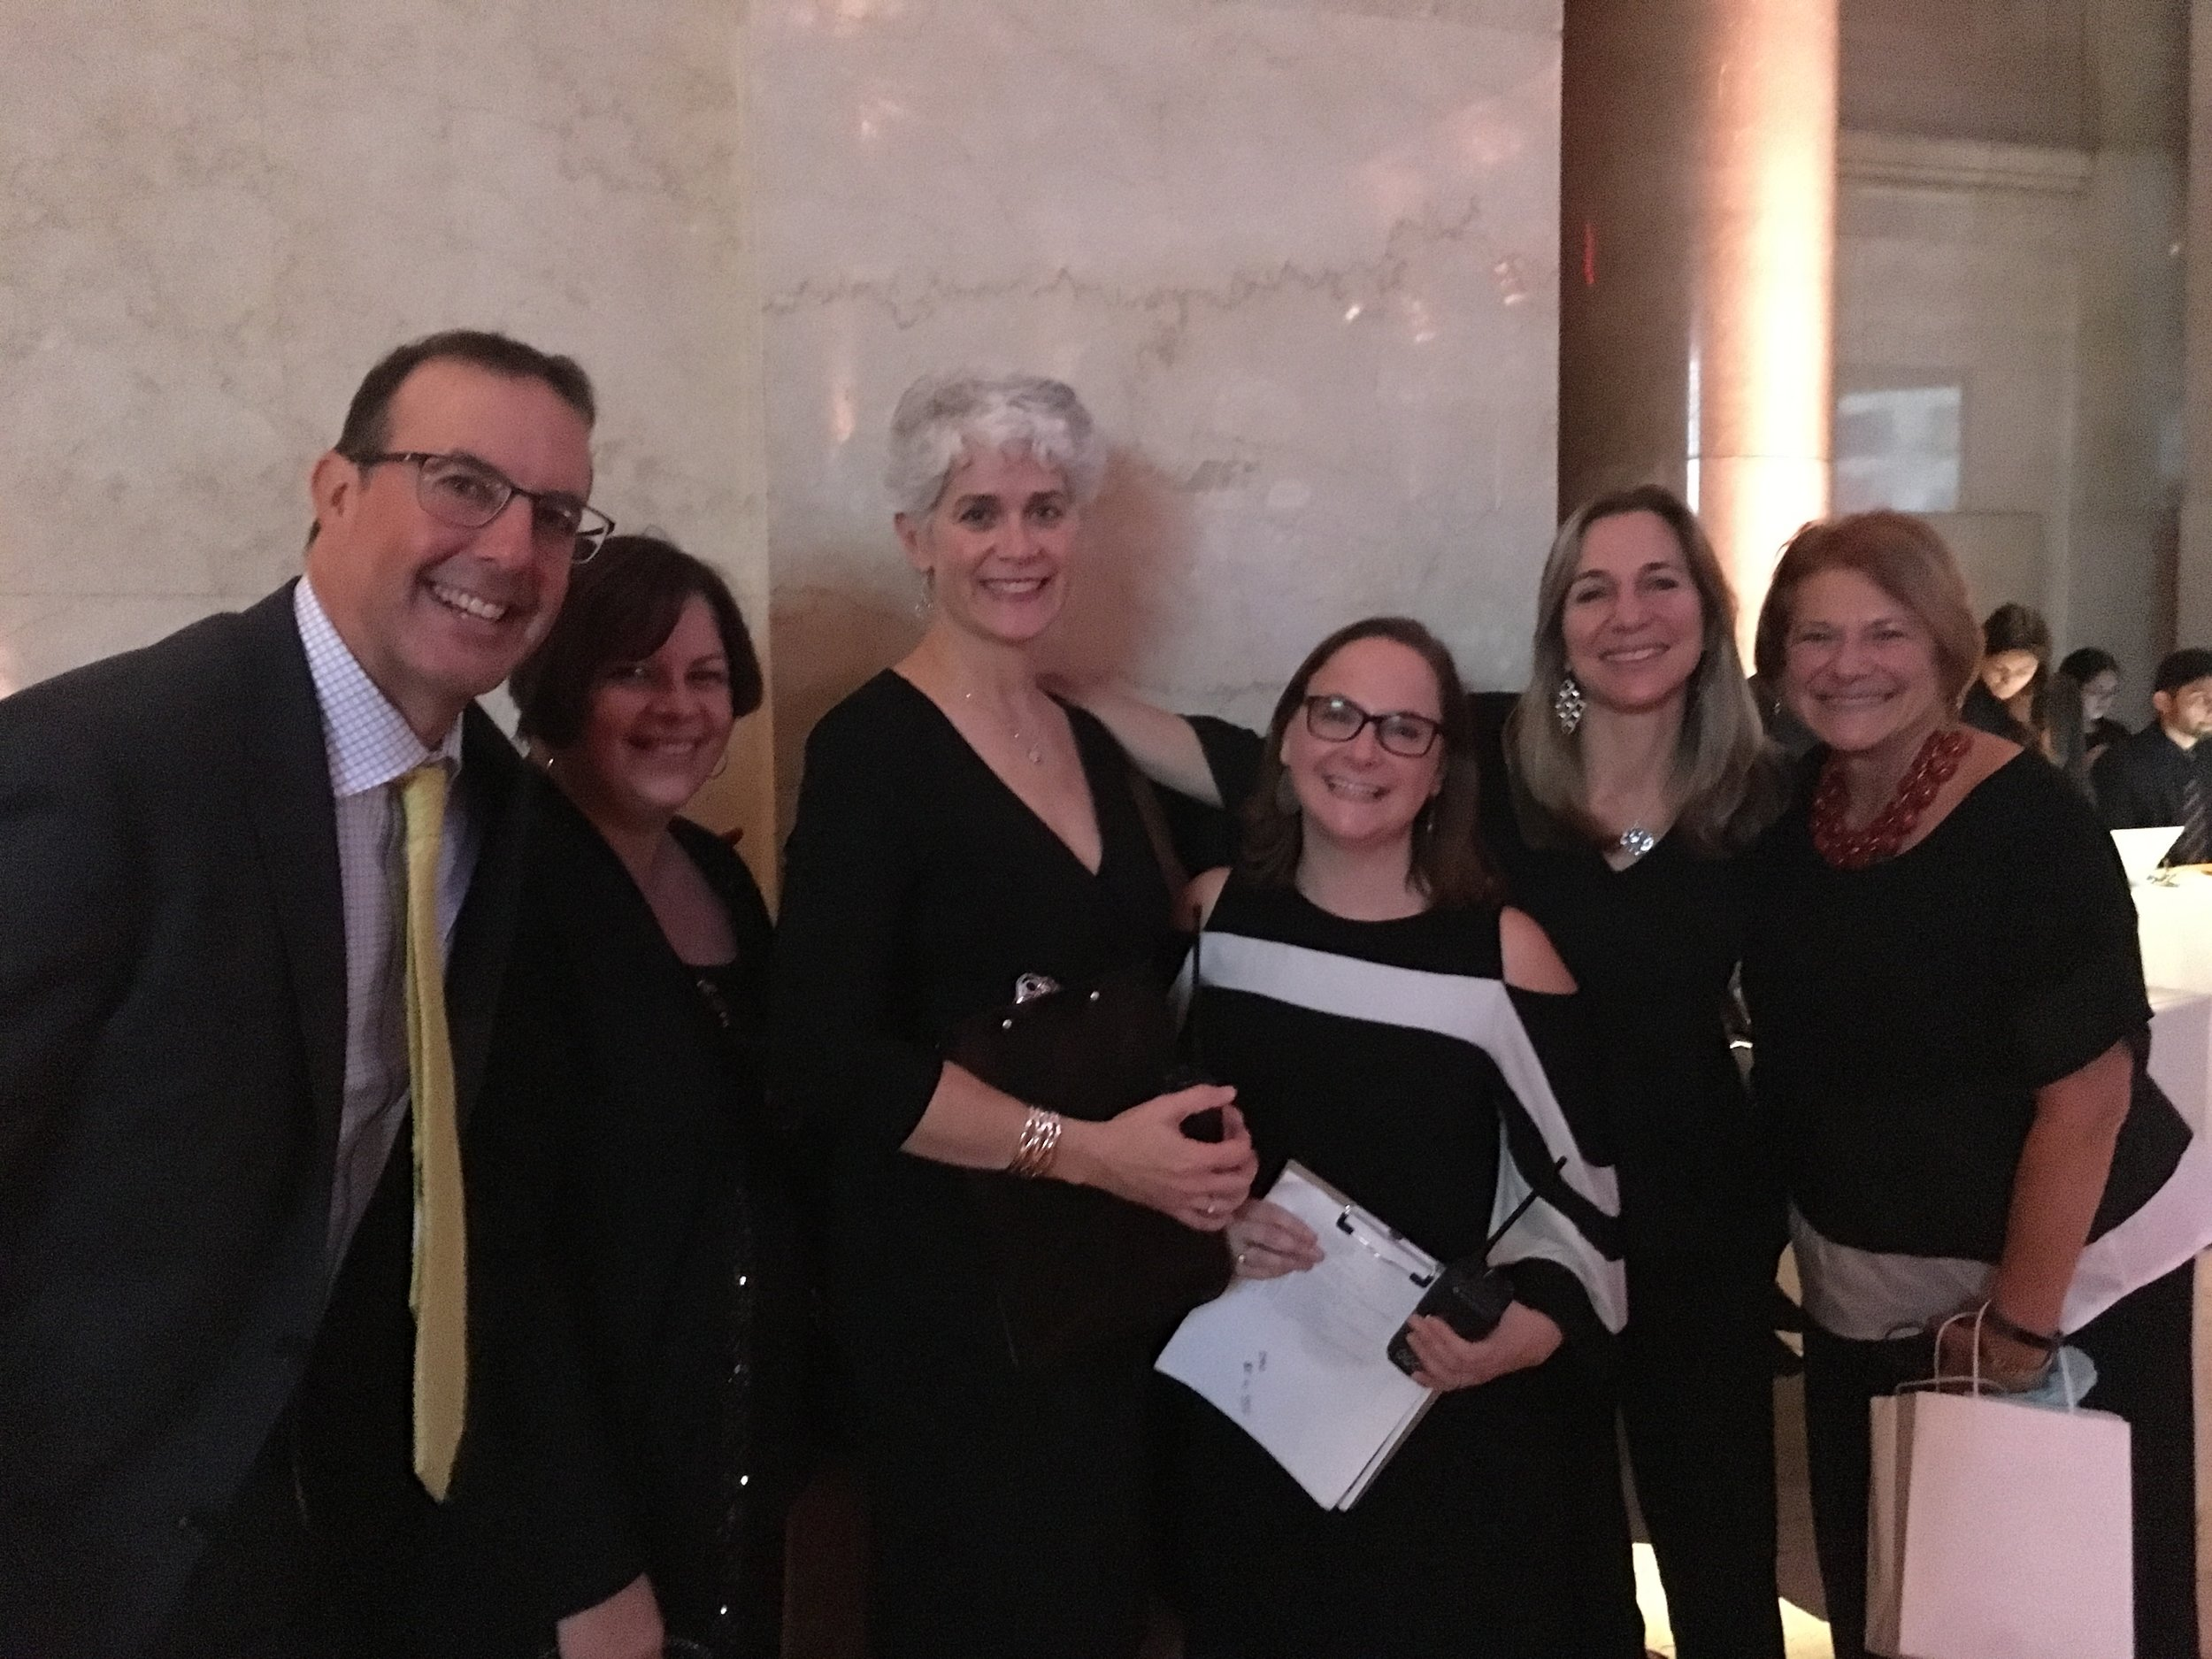 Jeff and some of our team at the Worldwide Orphans Gala